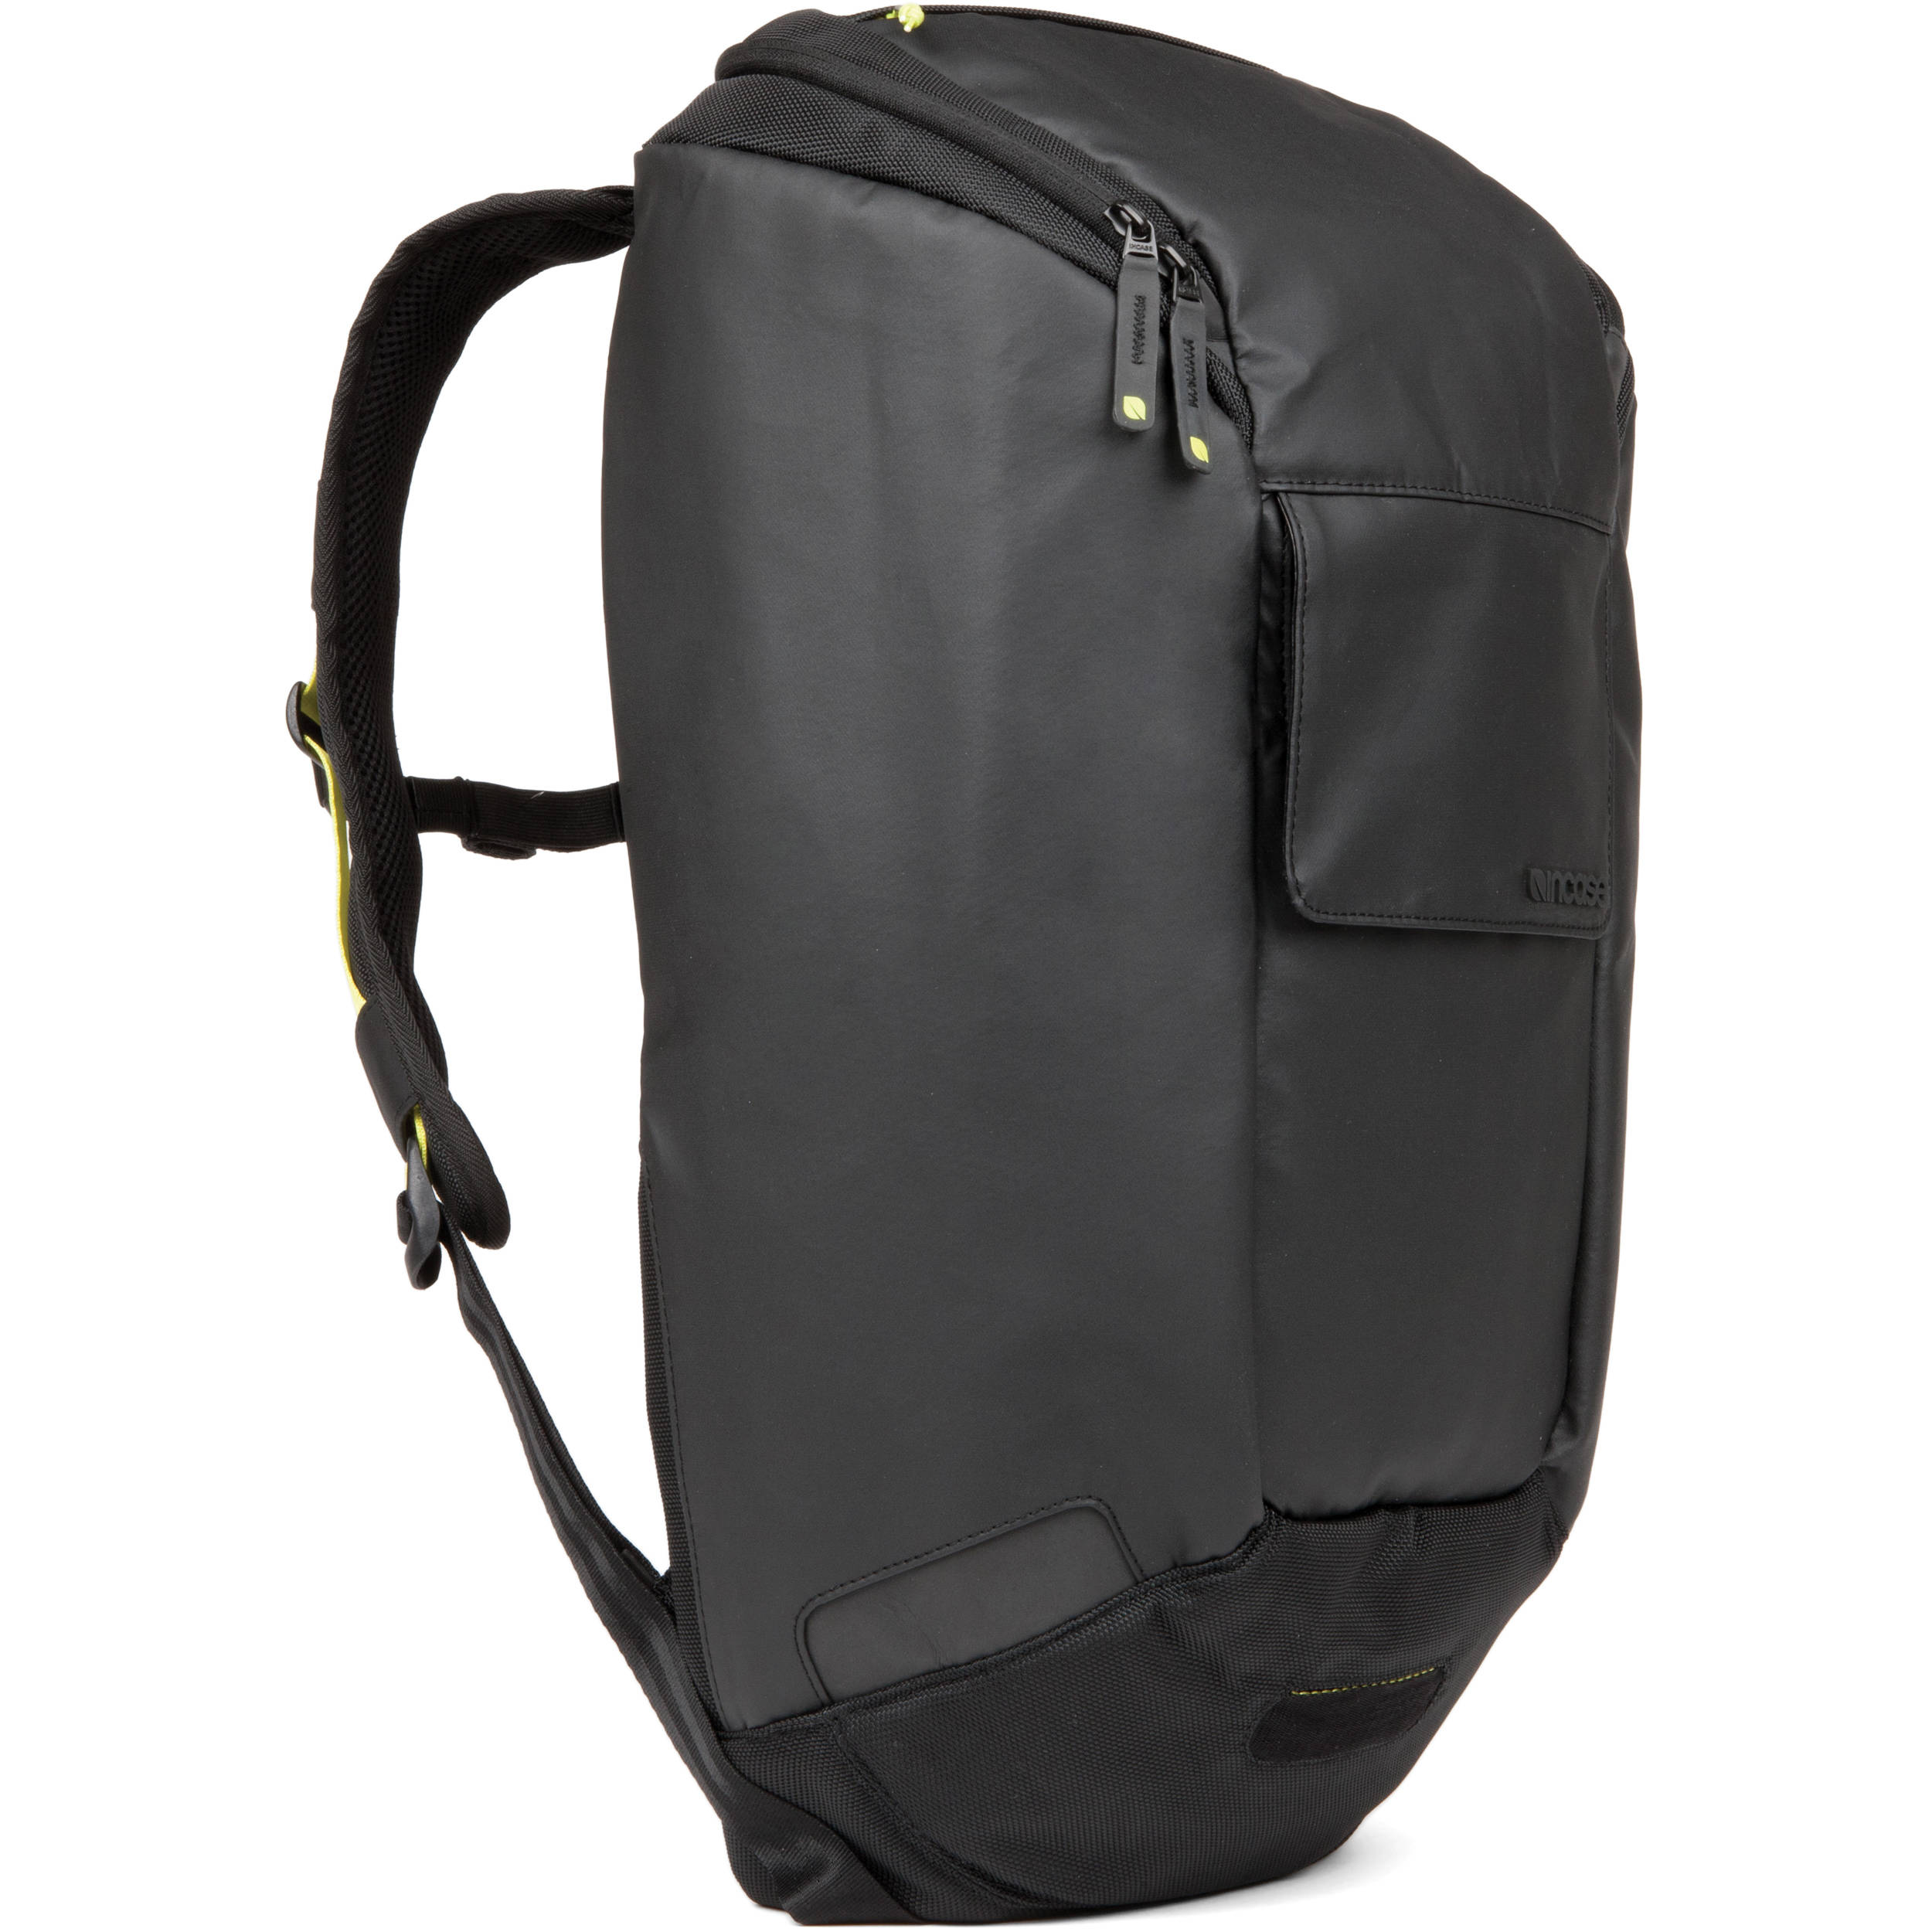 Incase Designs Corp Range Large Laptop Backpack CL55541 B&H